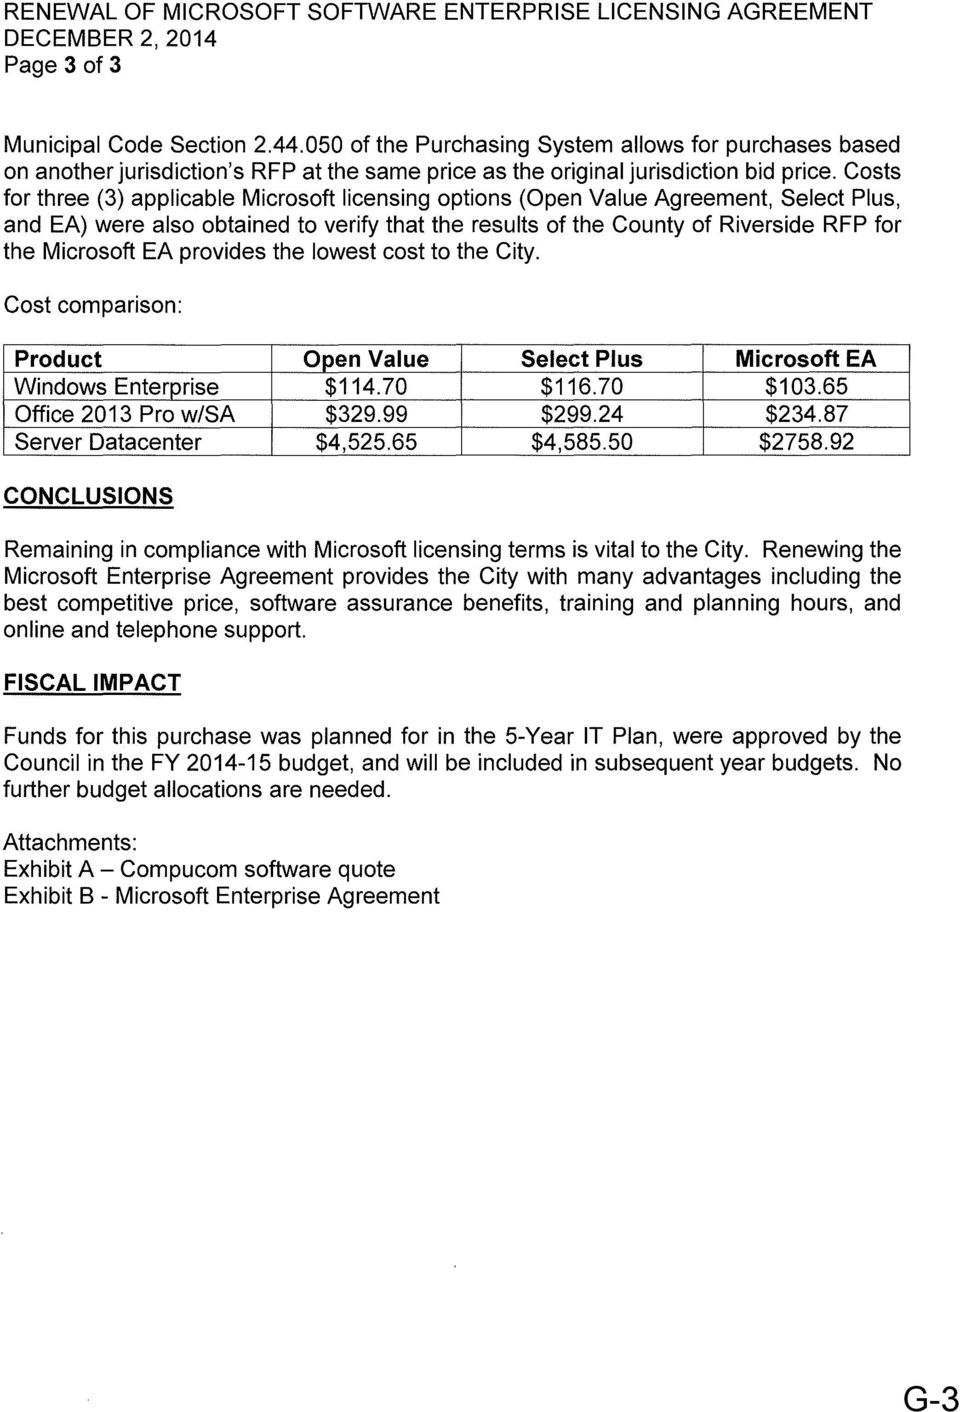 Costs for three (3) applicable Microsoft licensing options (Open Value Agreement, Select Plus, and EA) were also obtained to verify that the results of the County of Riverside RFP for the Microsoft